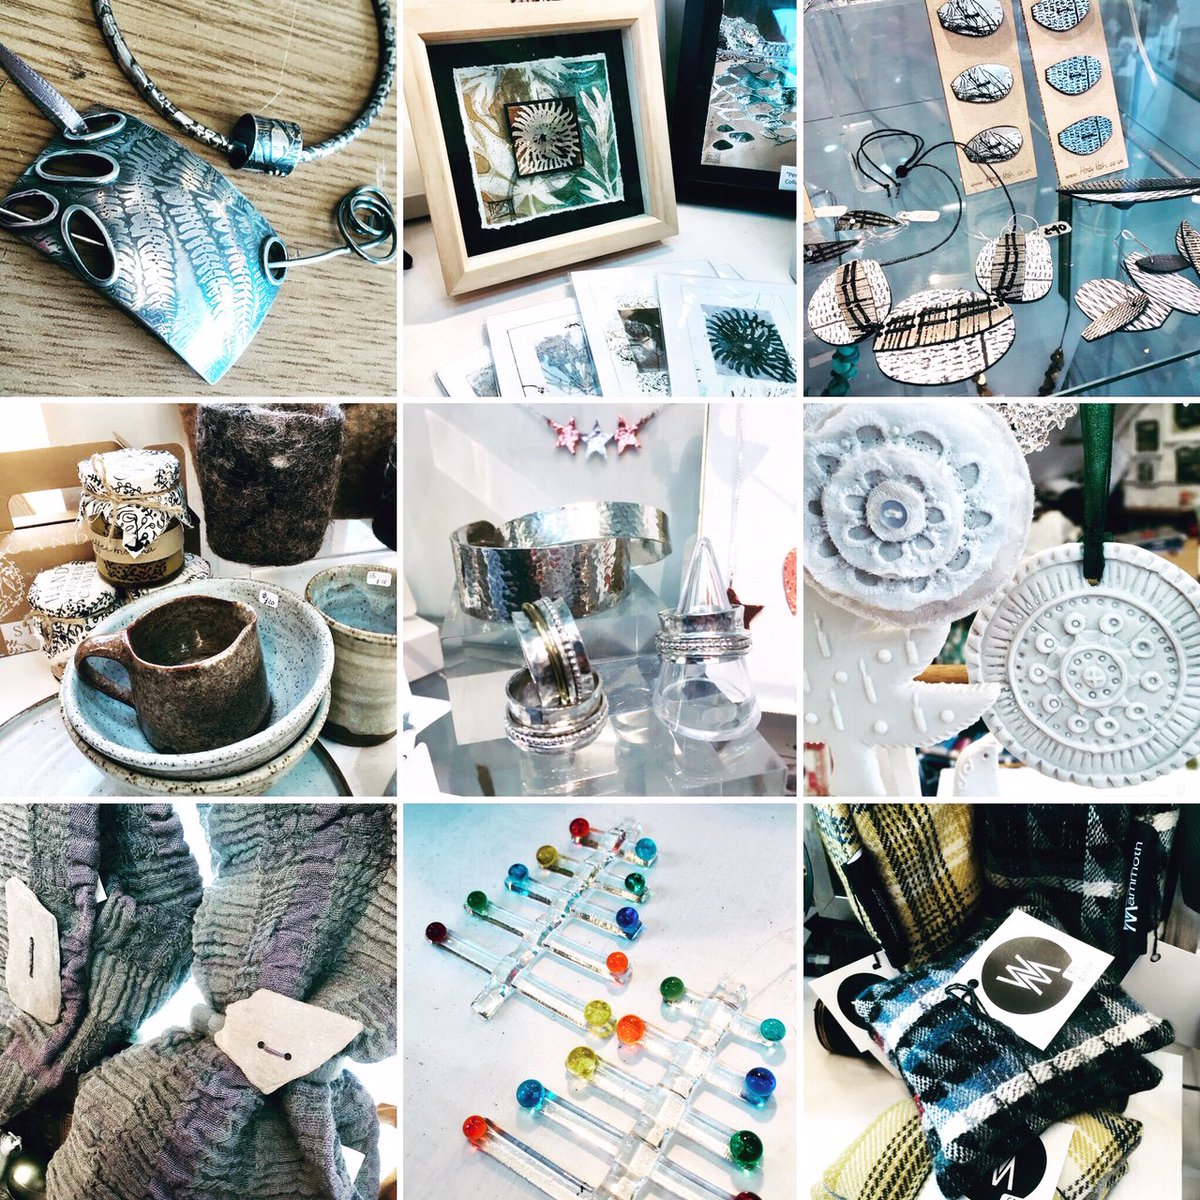 Just a tiny proportion of our gorgeous gallery stock- we really do have something for everyone! Come and see us 10-5 Tues- Sat at 37 Pen Y Lan Rd, Roath (just off Wellfield Road) #shoplocalwales #wellfieldroad  #christmasgifts #handmade #roath #cardiff  #supportlocalartists